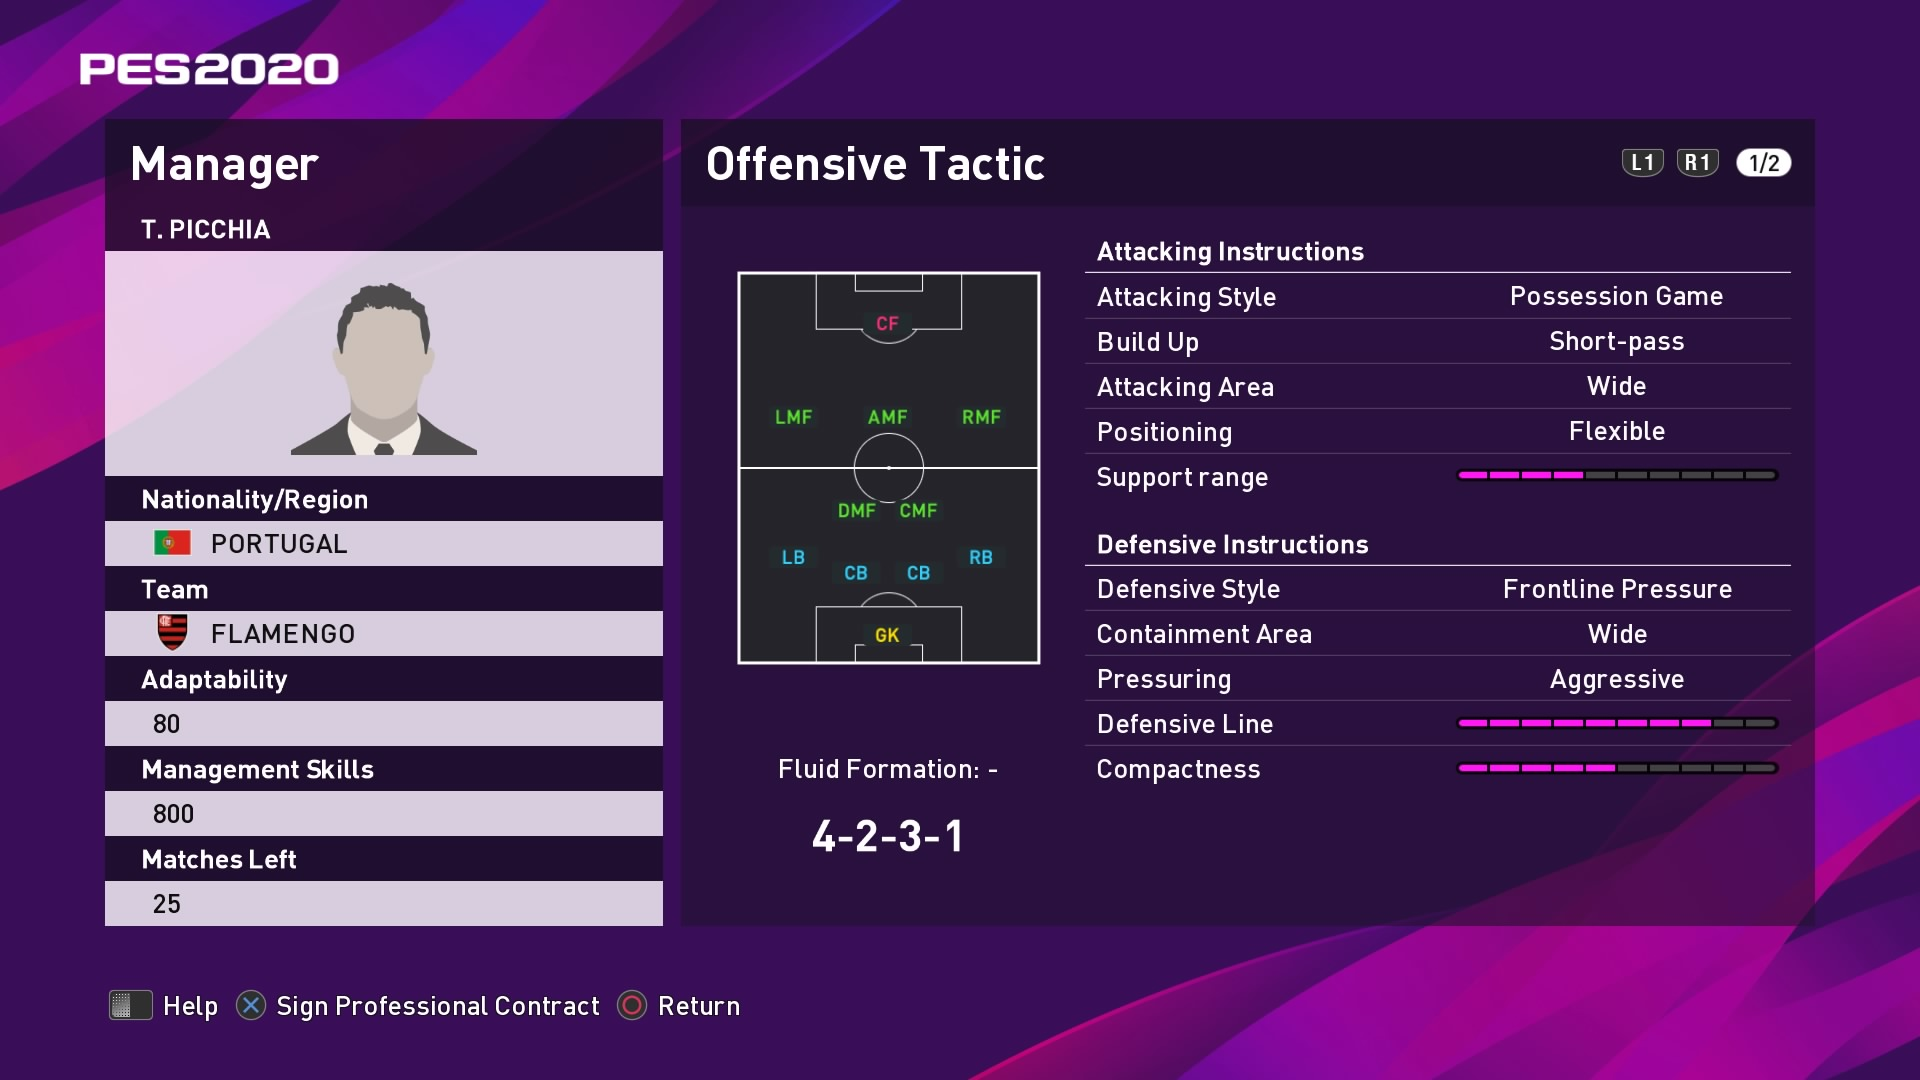 T. Picchia (Jorge Jesus) Offensive Tactic in PES 2020 myClub